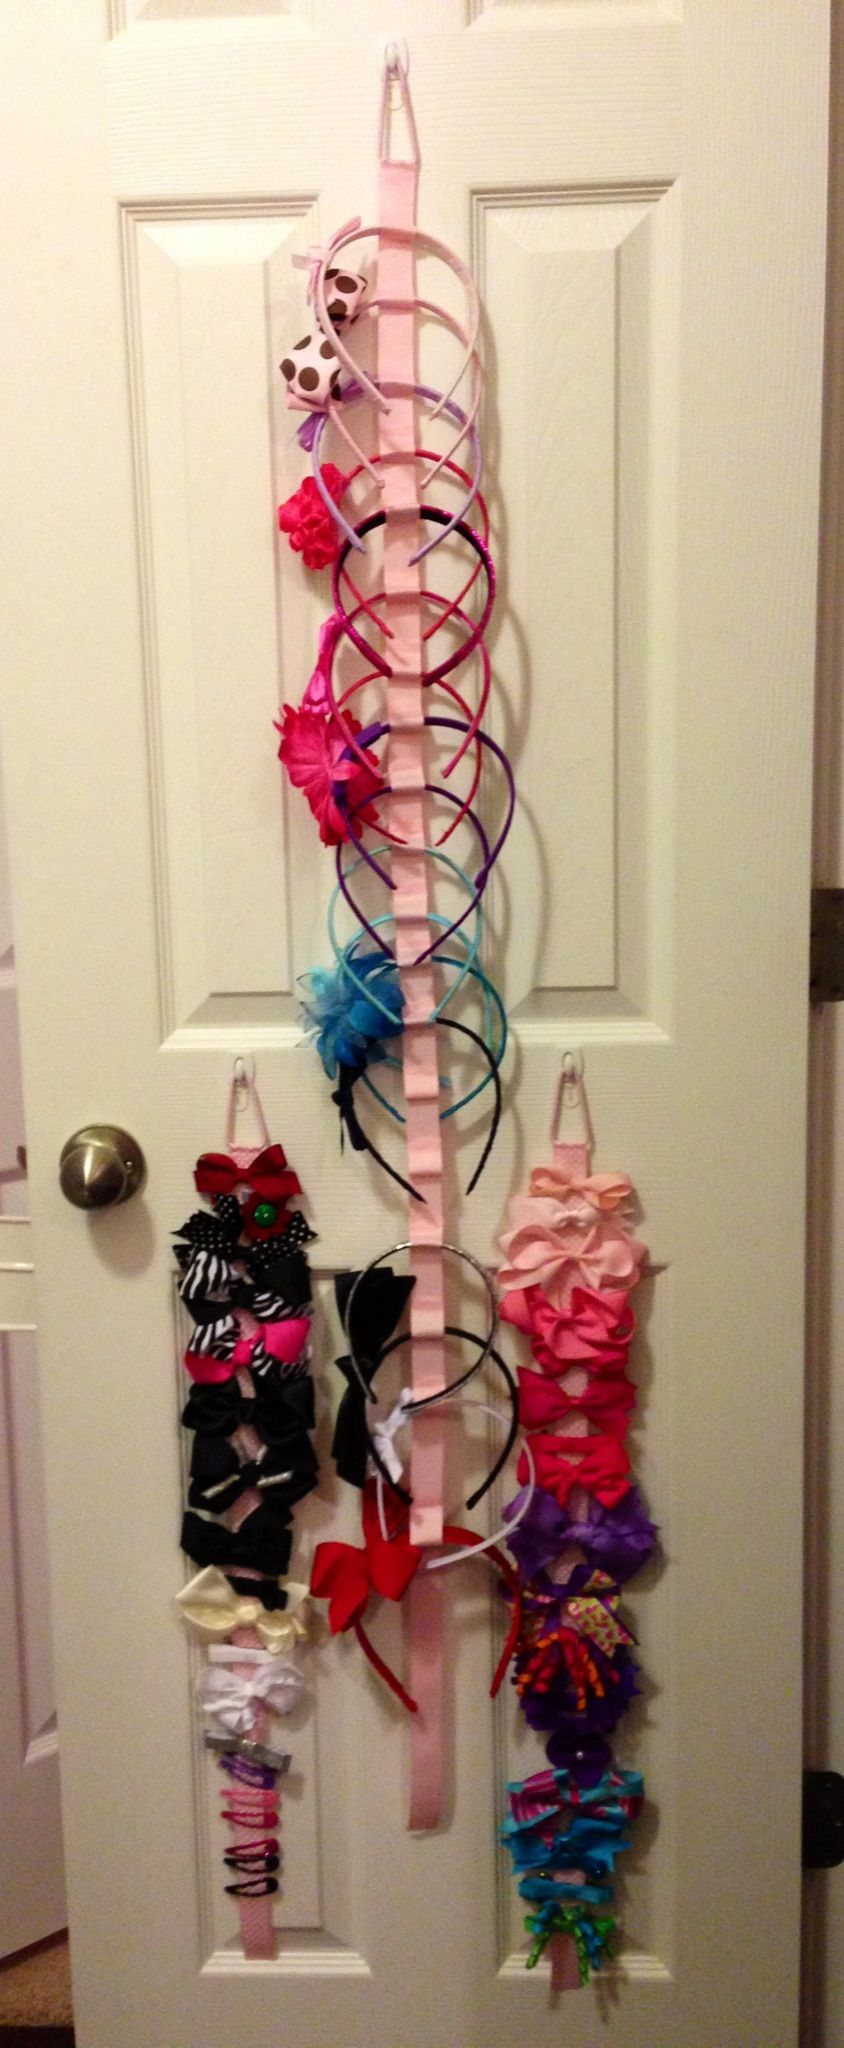 Vintage hair accessory holder - Hair Accessory Organization Made From Ribbon Ponytail Holders And Hot Glue Easy Inexpensive